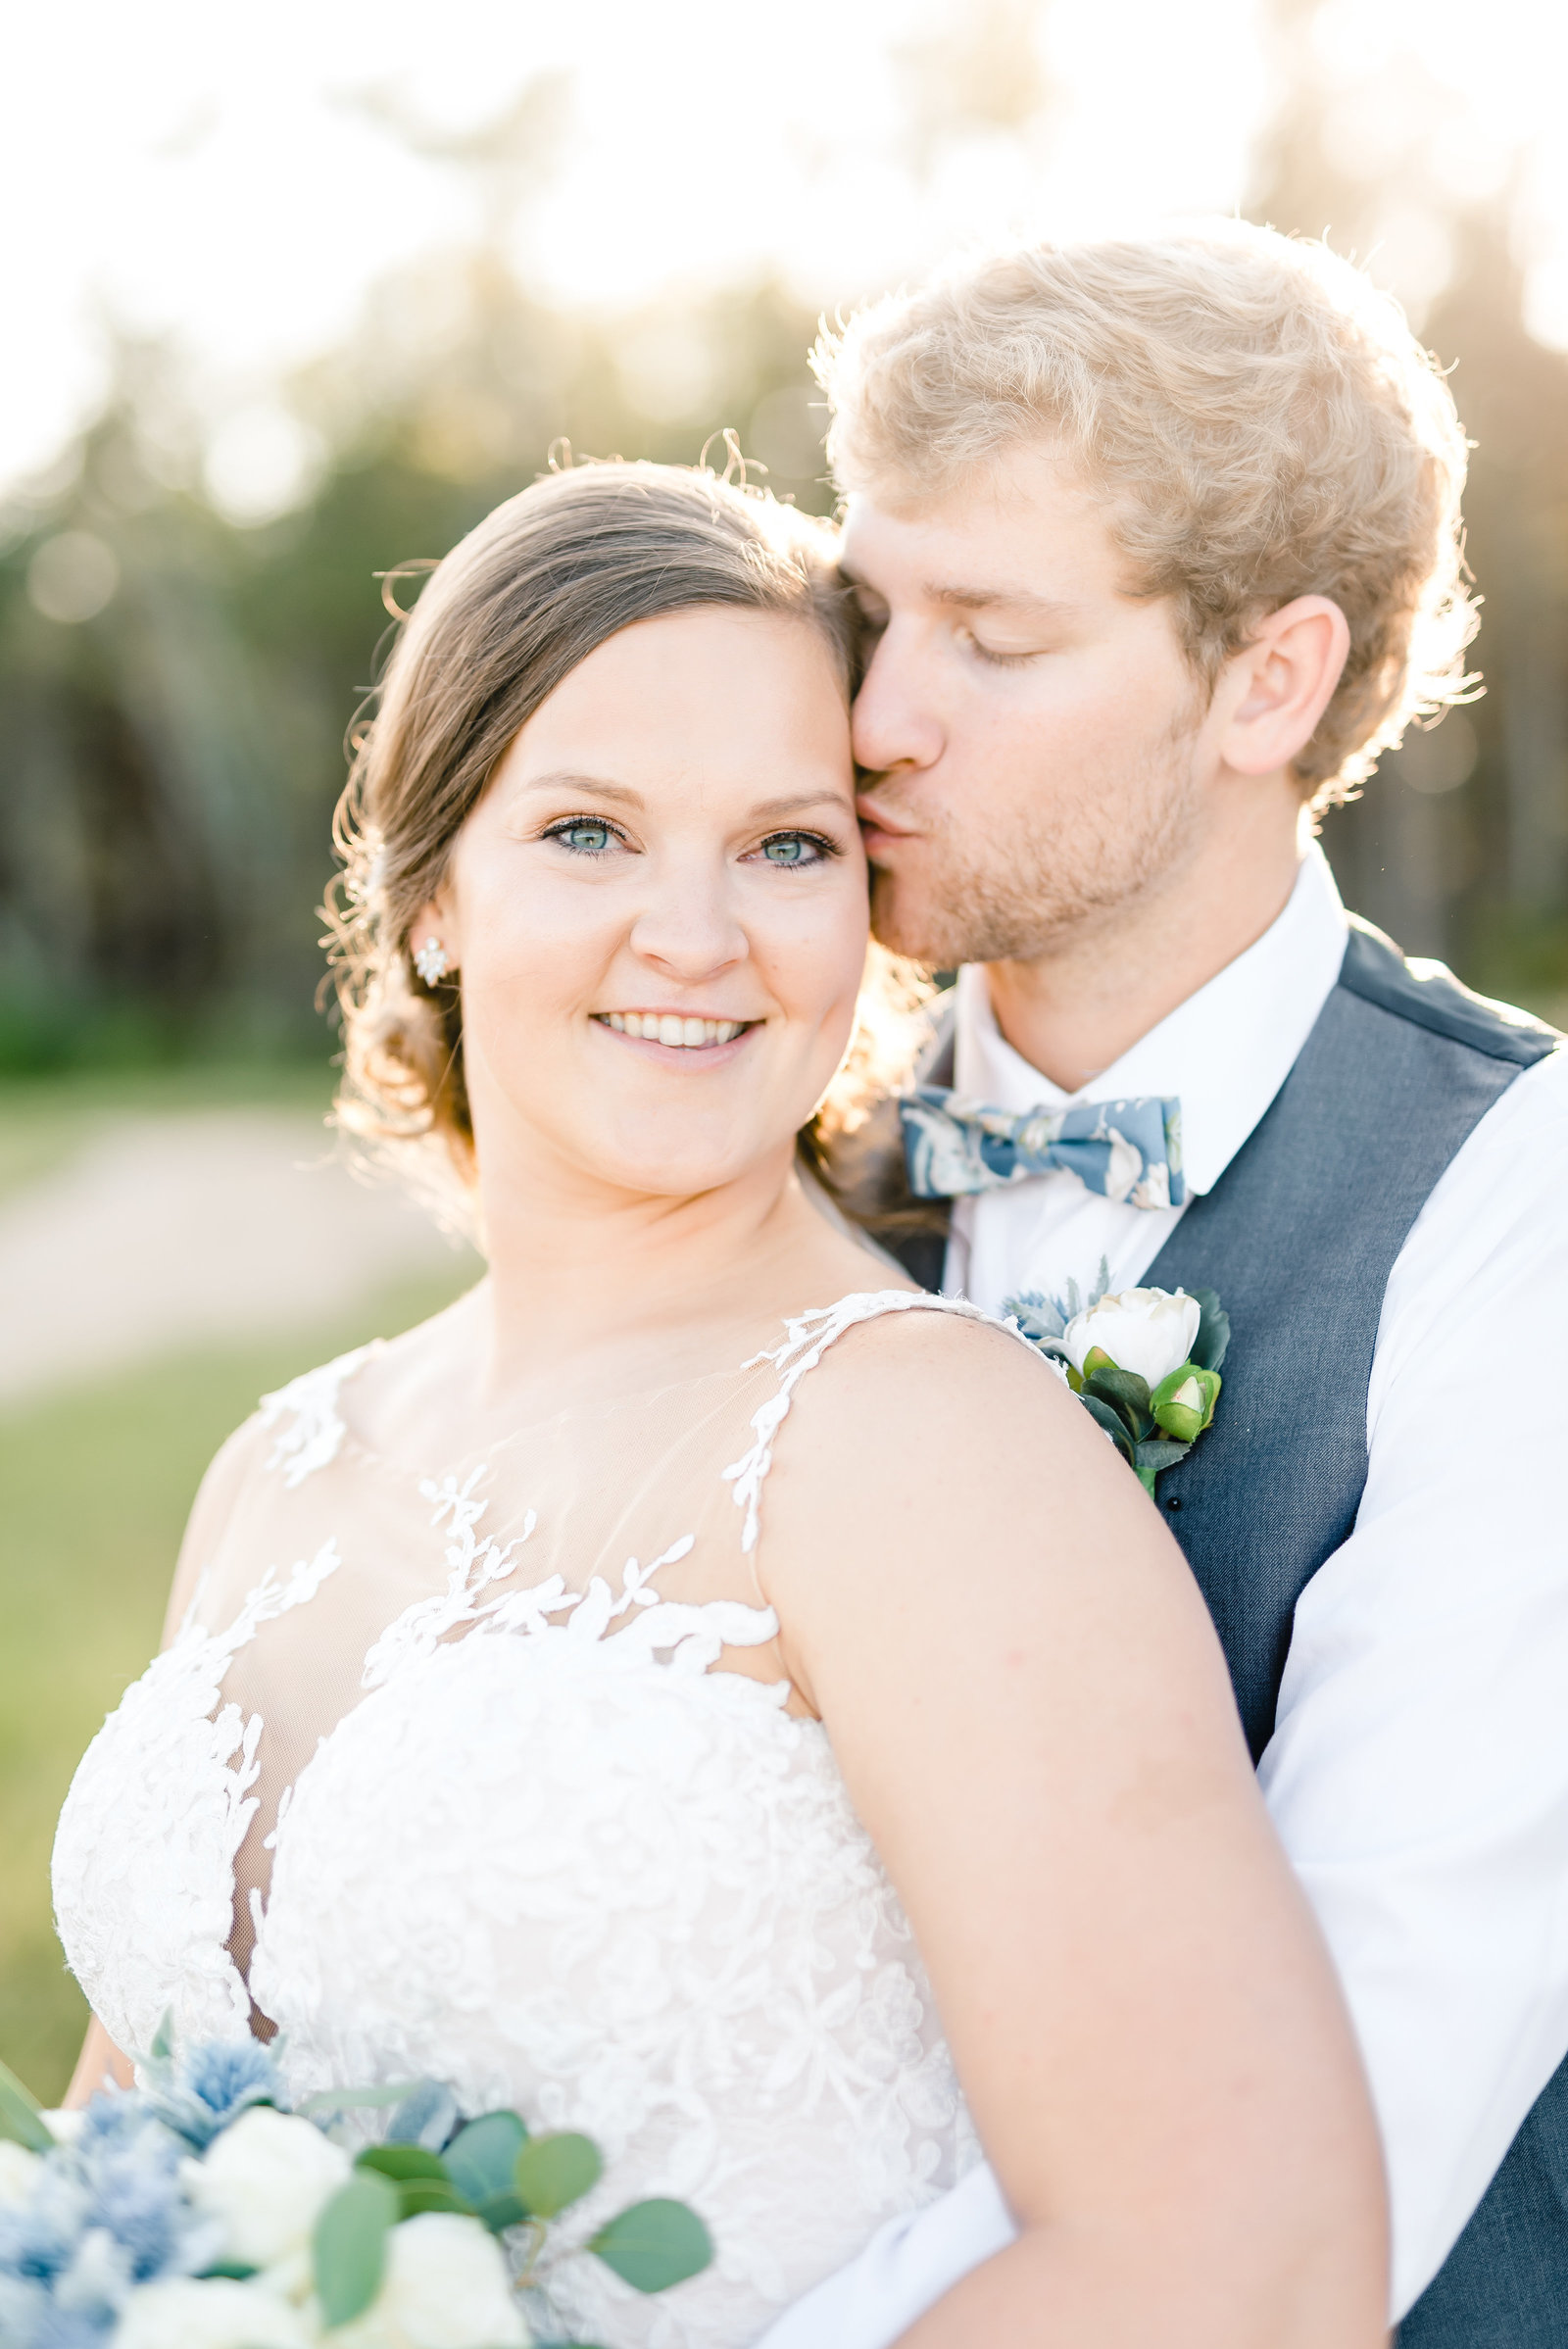 WeiderWeddingBrideandGroomPortraits-109